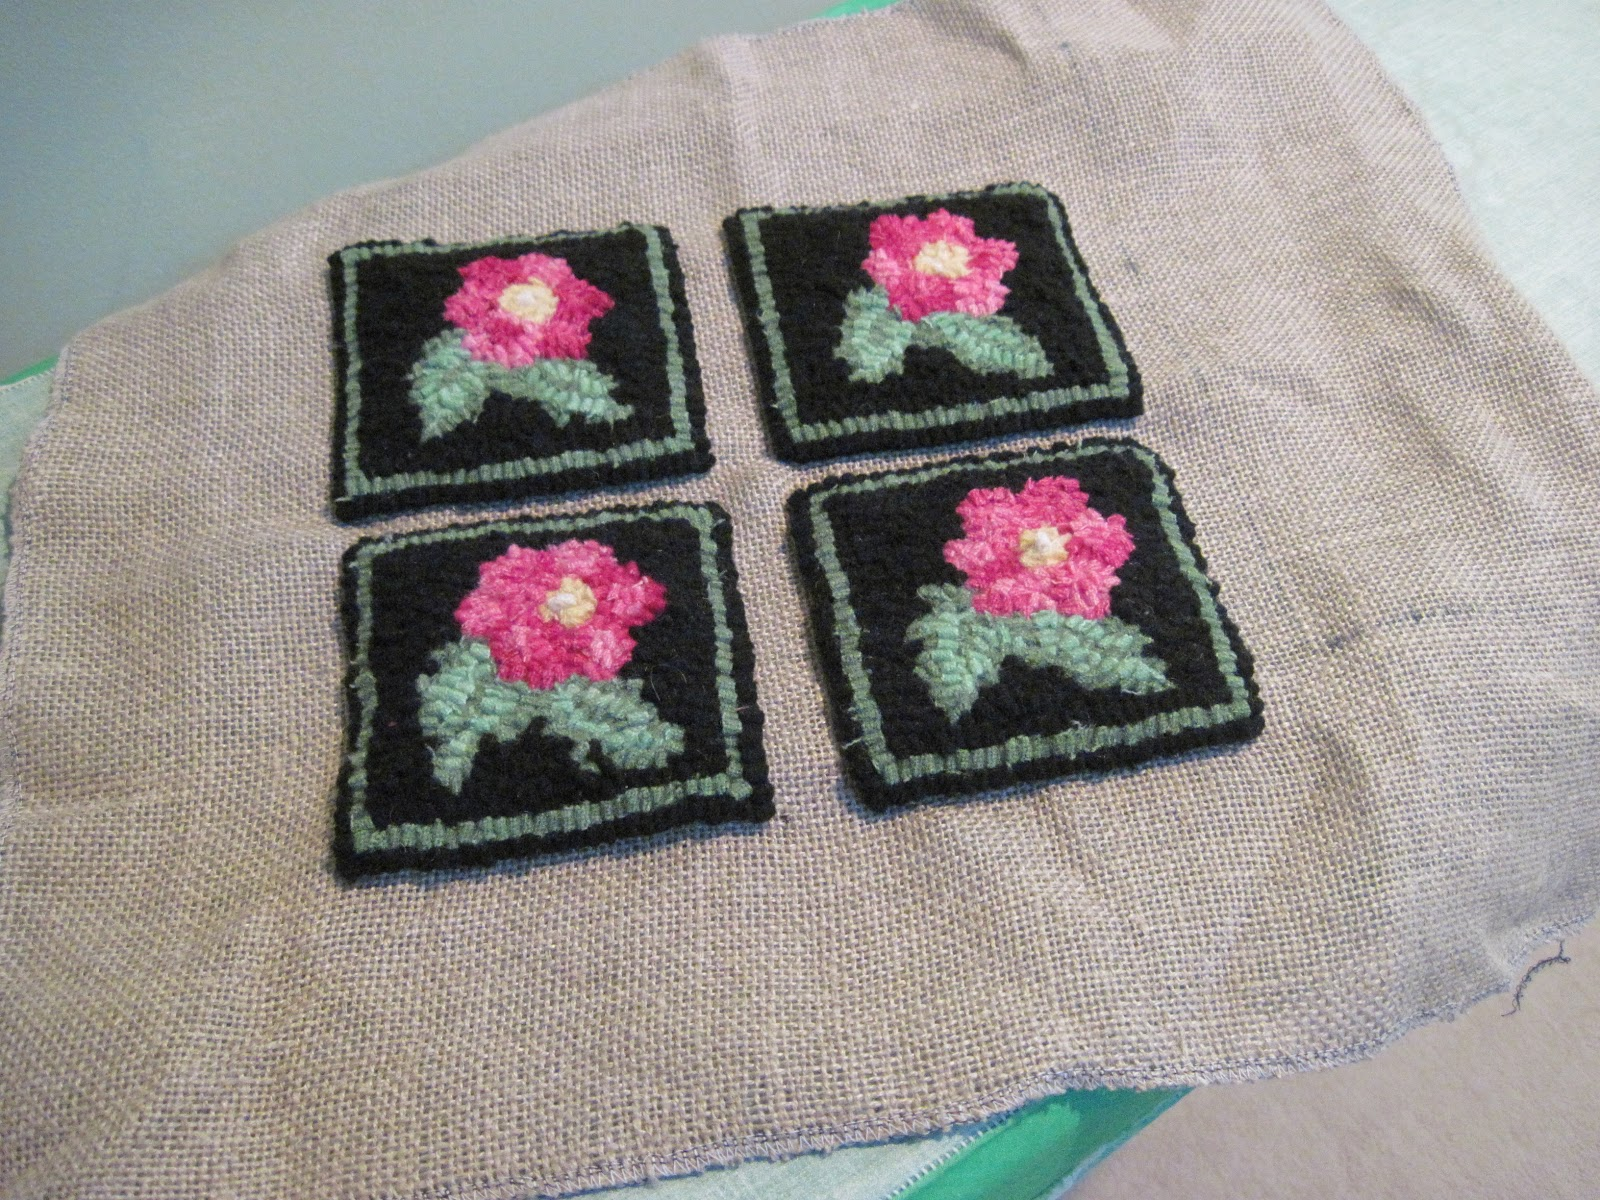 We sew coasters under the hot for the day of lovers